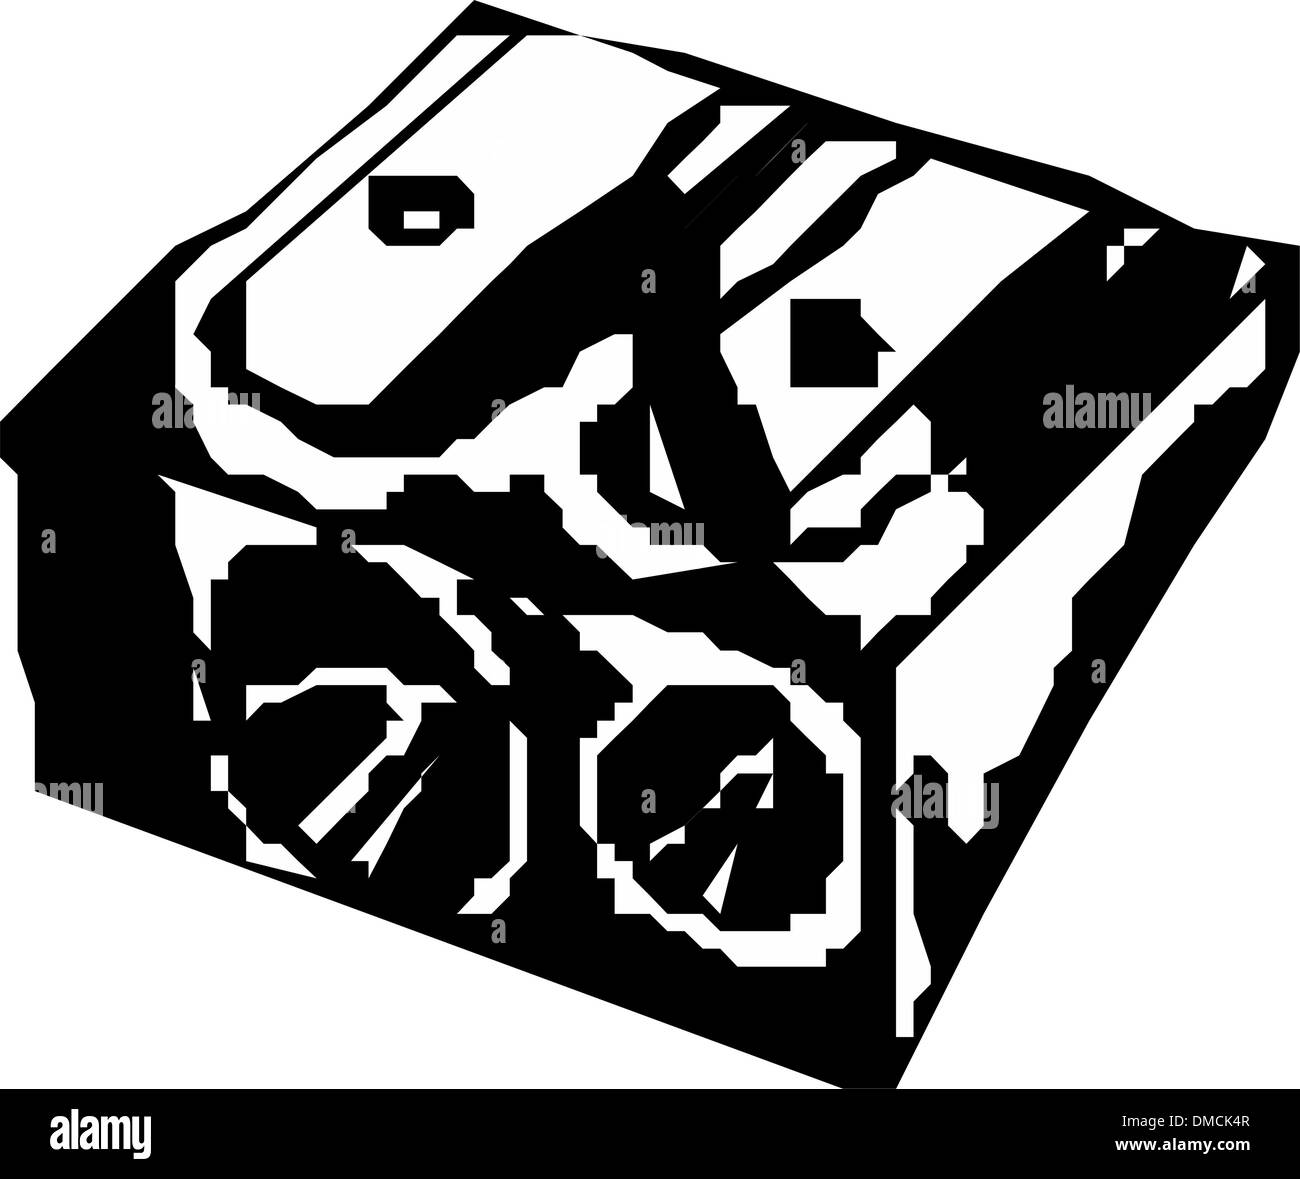 pencil sharpener black and white stock photos & images - alamy